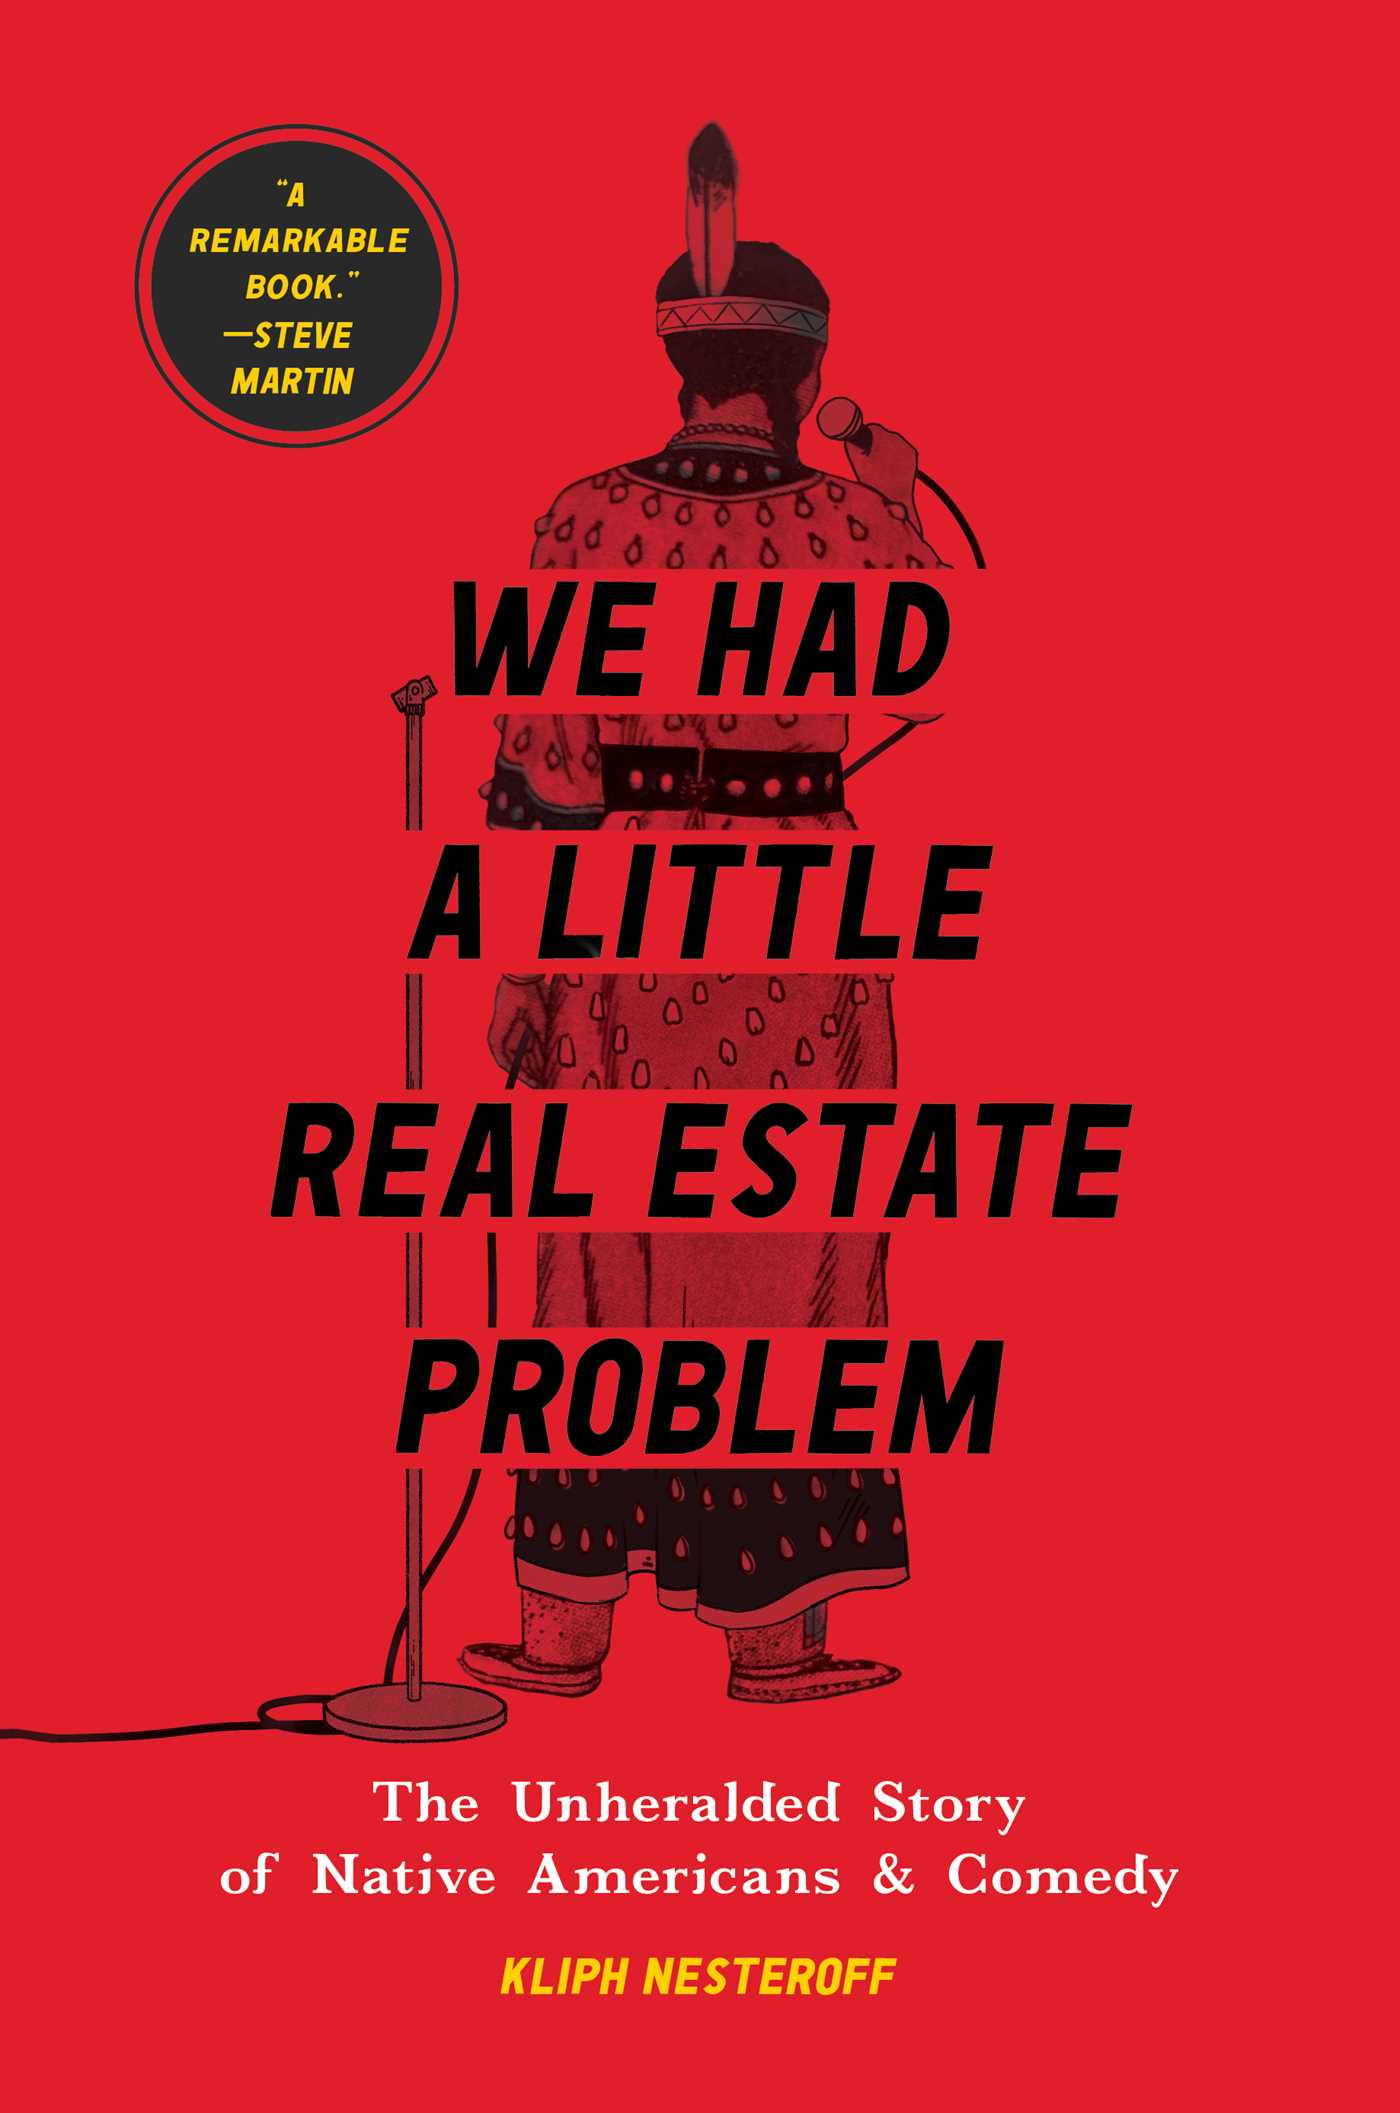 We Had a Little Real Estate Problem   Book by Kliph Nesteroff   Official  Publisher Page   Simon & Schuster